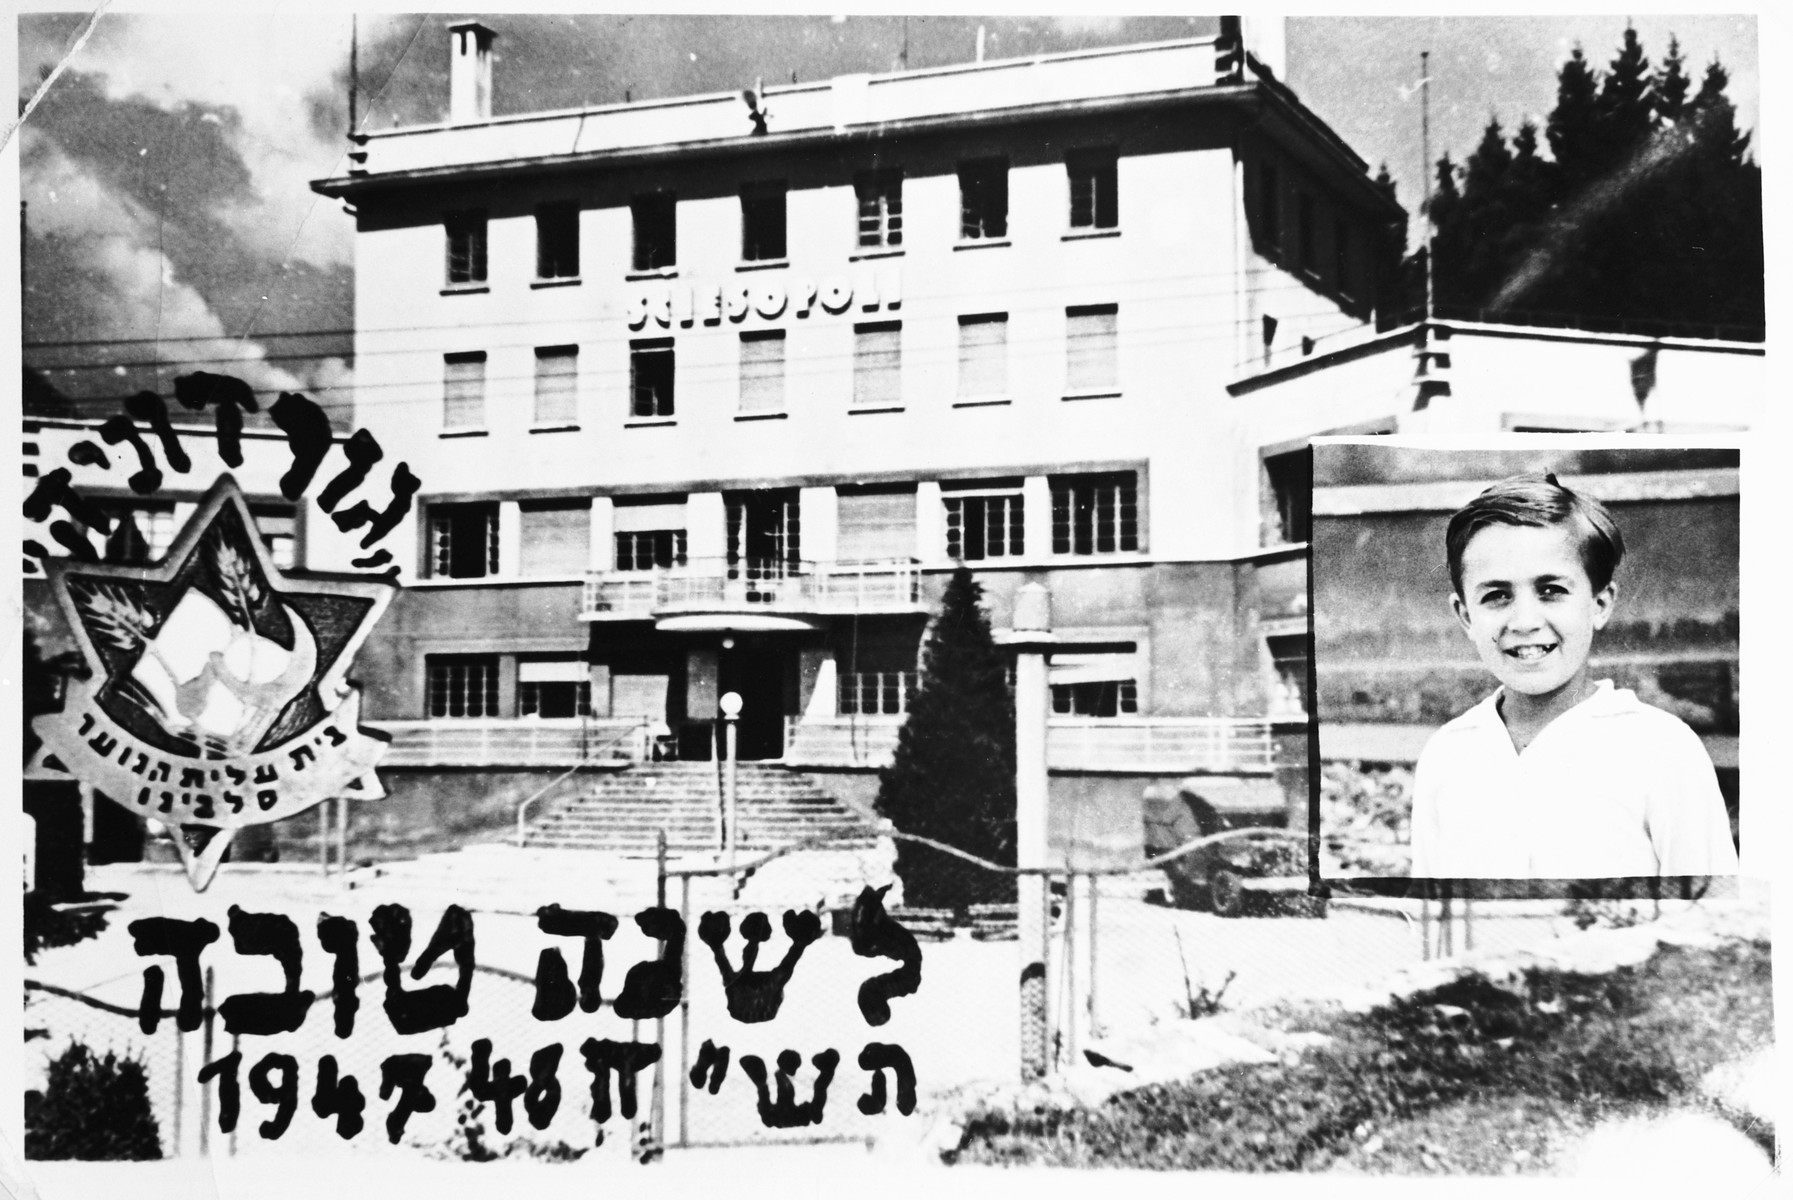 Jewish New Year's card with a picture of a child superimposed on a view of the Youth Aliyah children's home in Selvino, Italy.  The card was sent by Mendele Grinberg to Shie Zoltak.